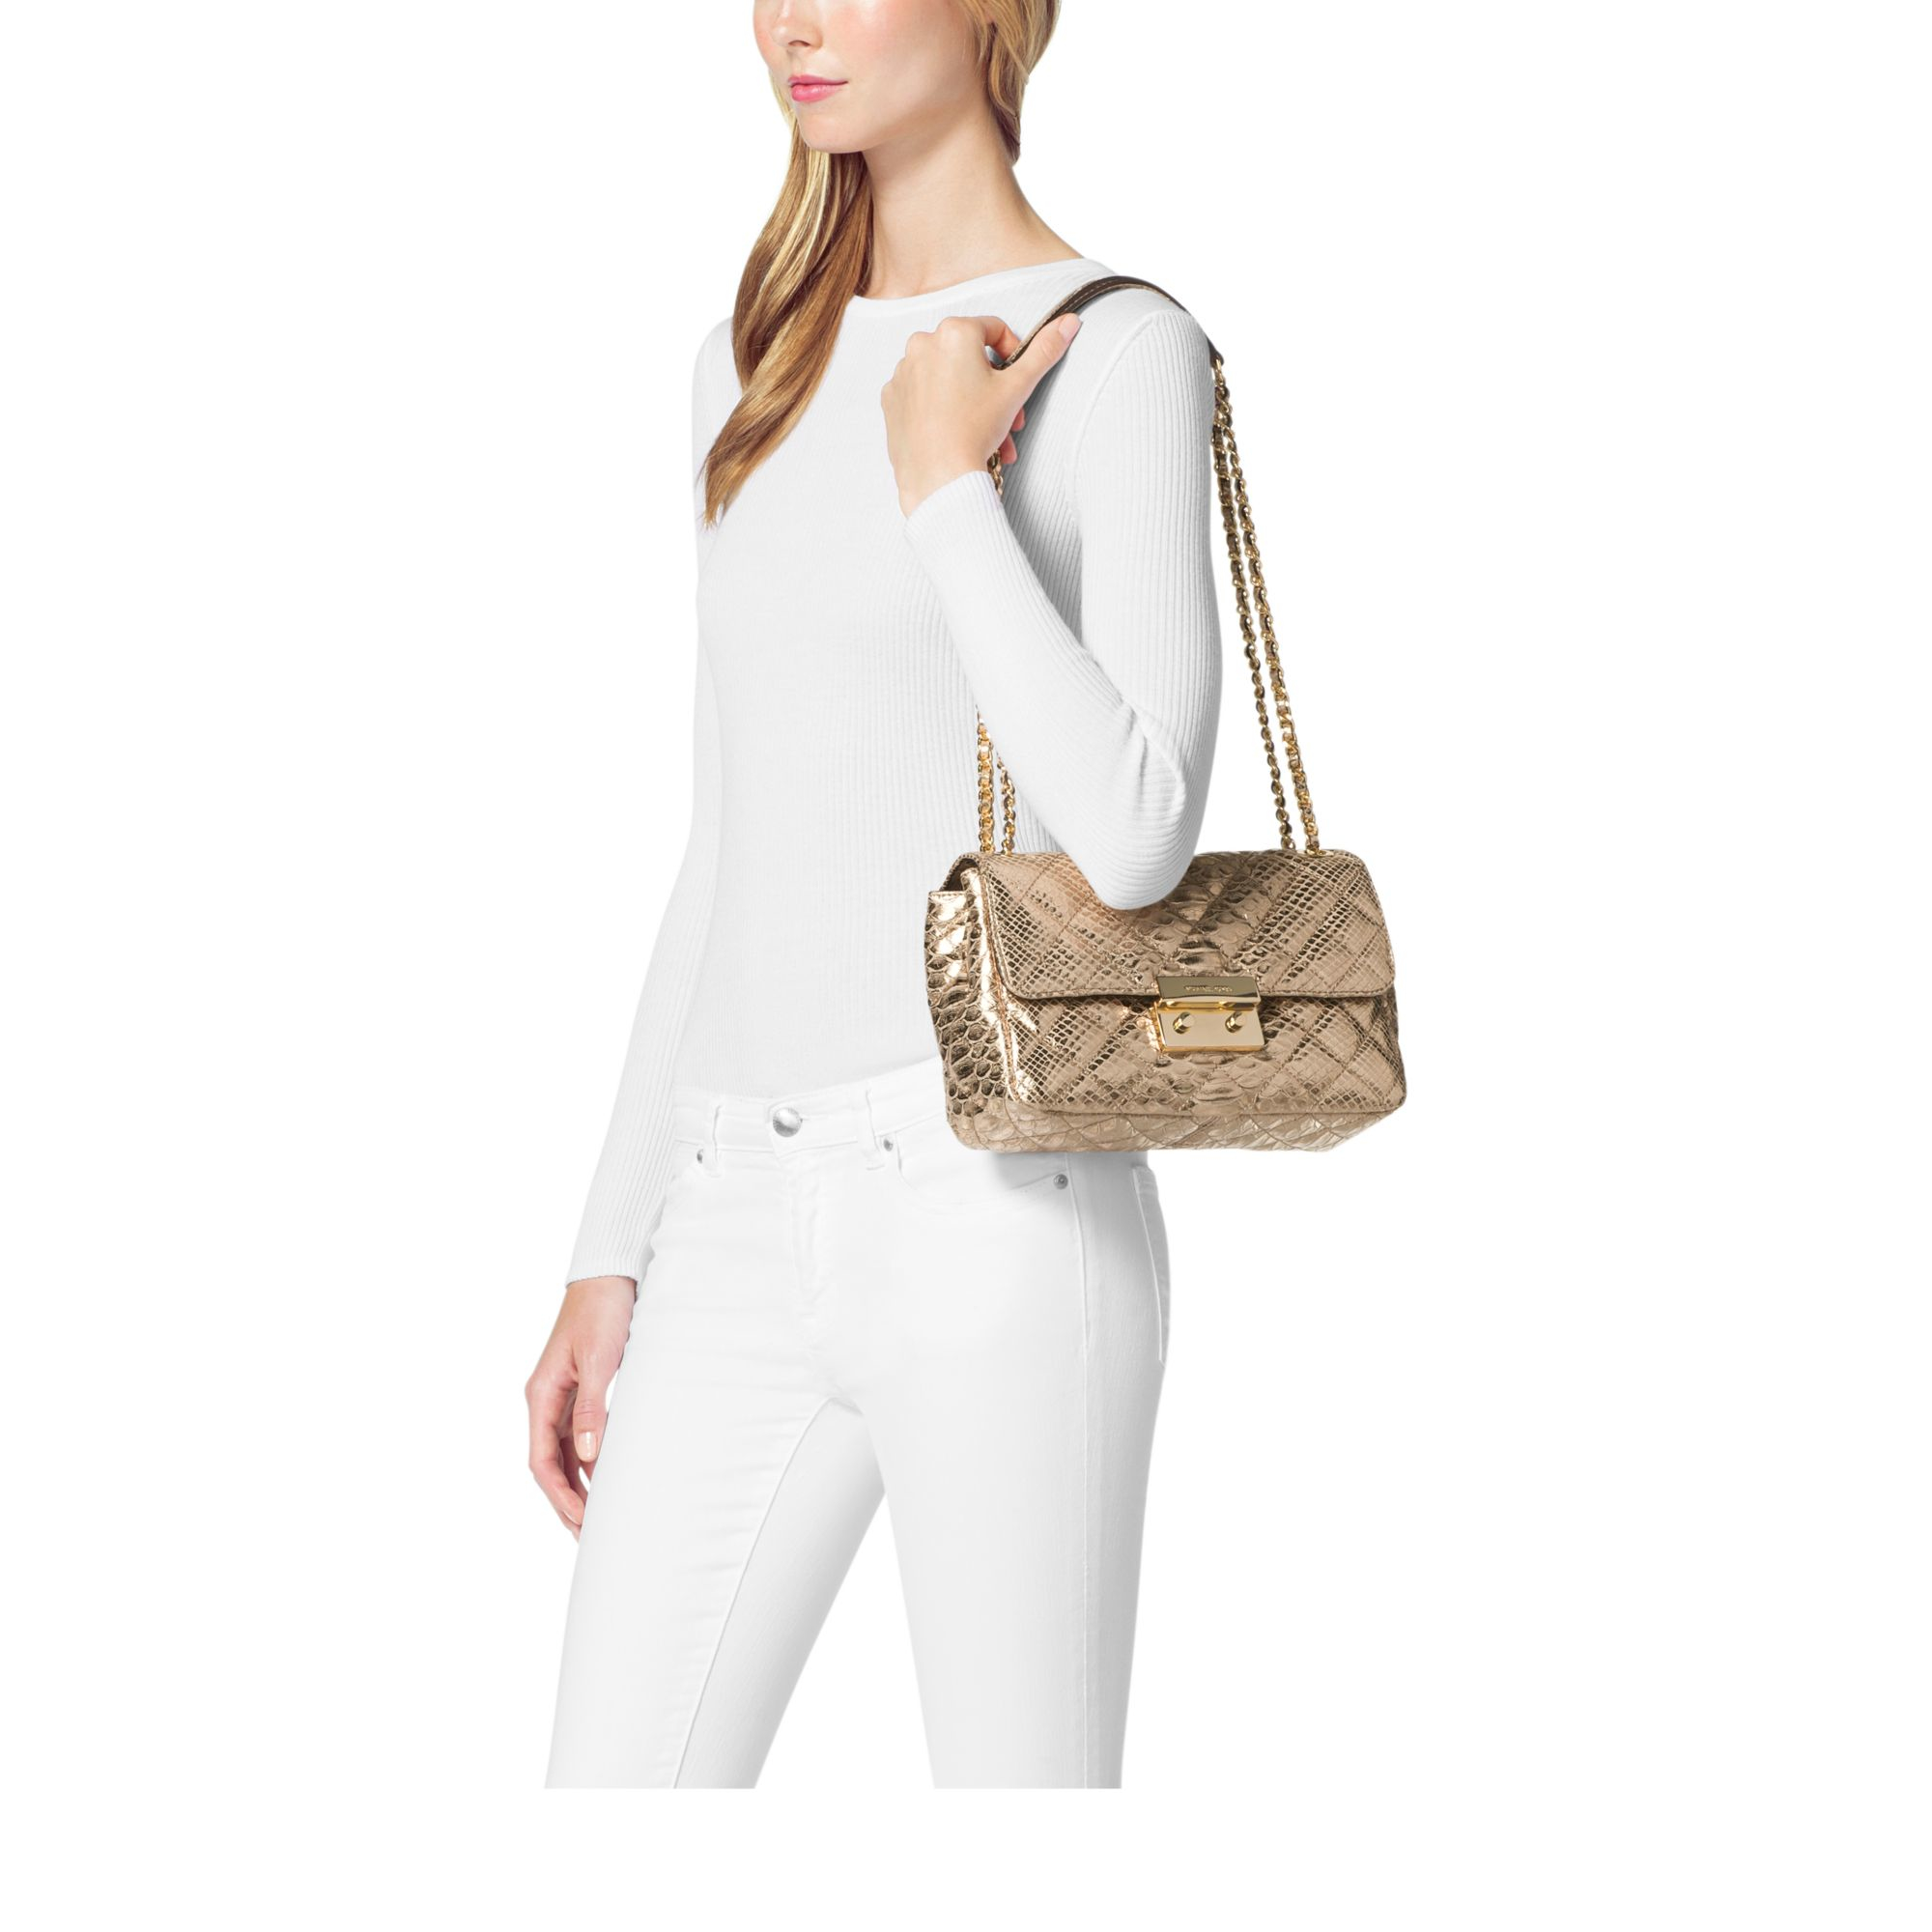 044f07a1b2937 Lyst - Michael Kors Sloan Large Metallic Embossed-leather Shoulder ...